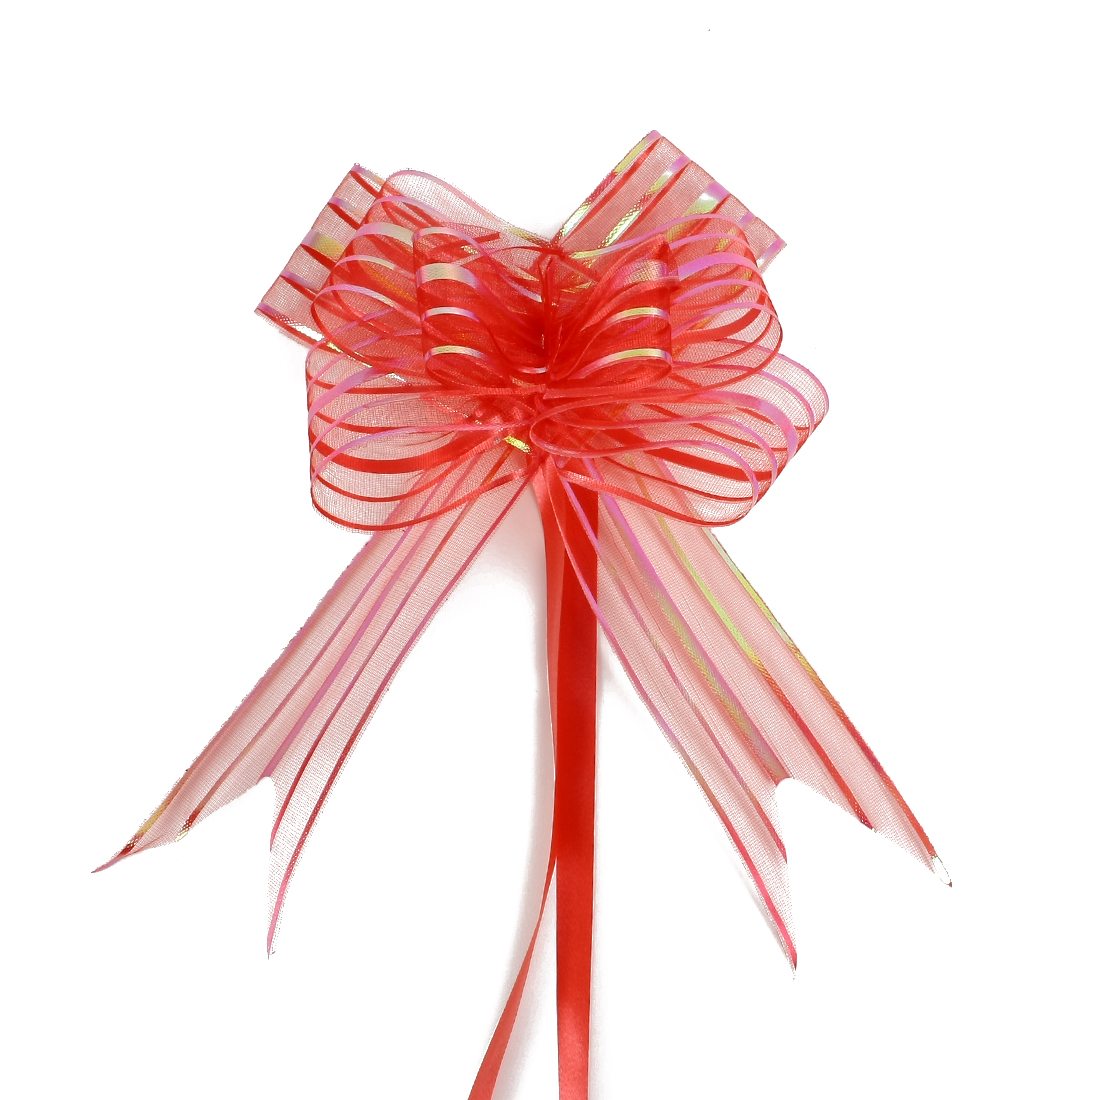 Wedding Party Gift Wrapping Ribbon Pull Bows Decoration Red 5cm Width 10pcs